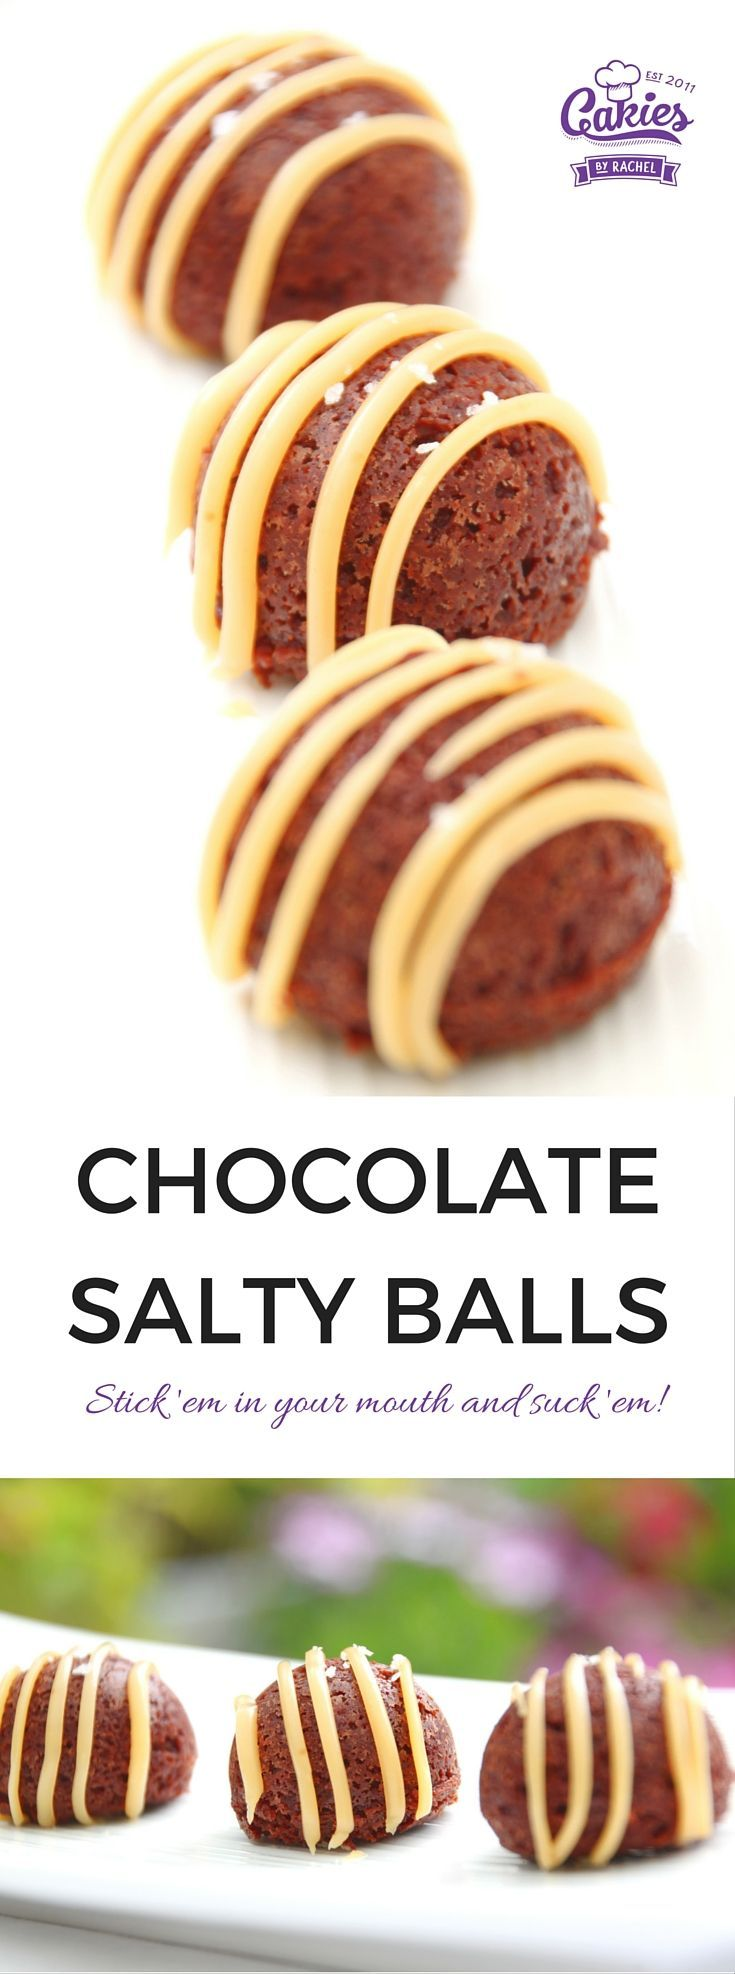 Chocolate Salty Balls recipe inspired by South Park Chef's song.   https://www.cakieshq.com/chocolate-salty-balls-recipe/